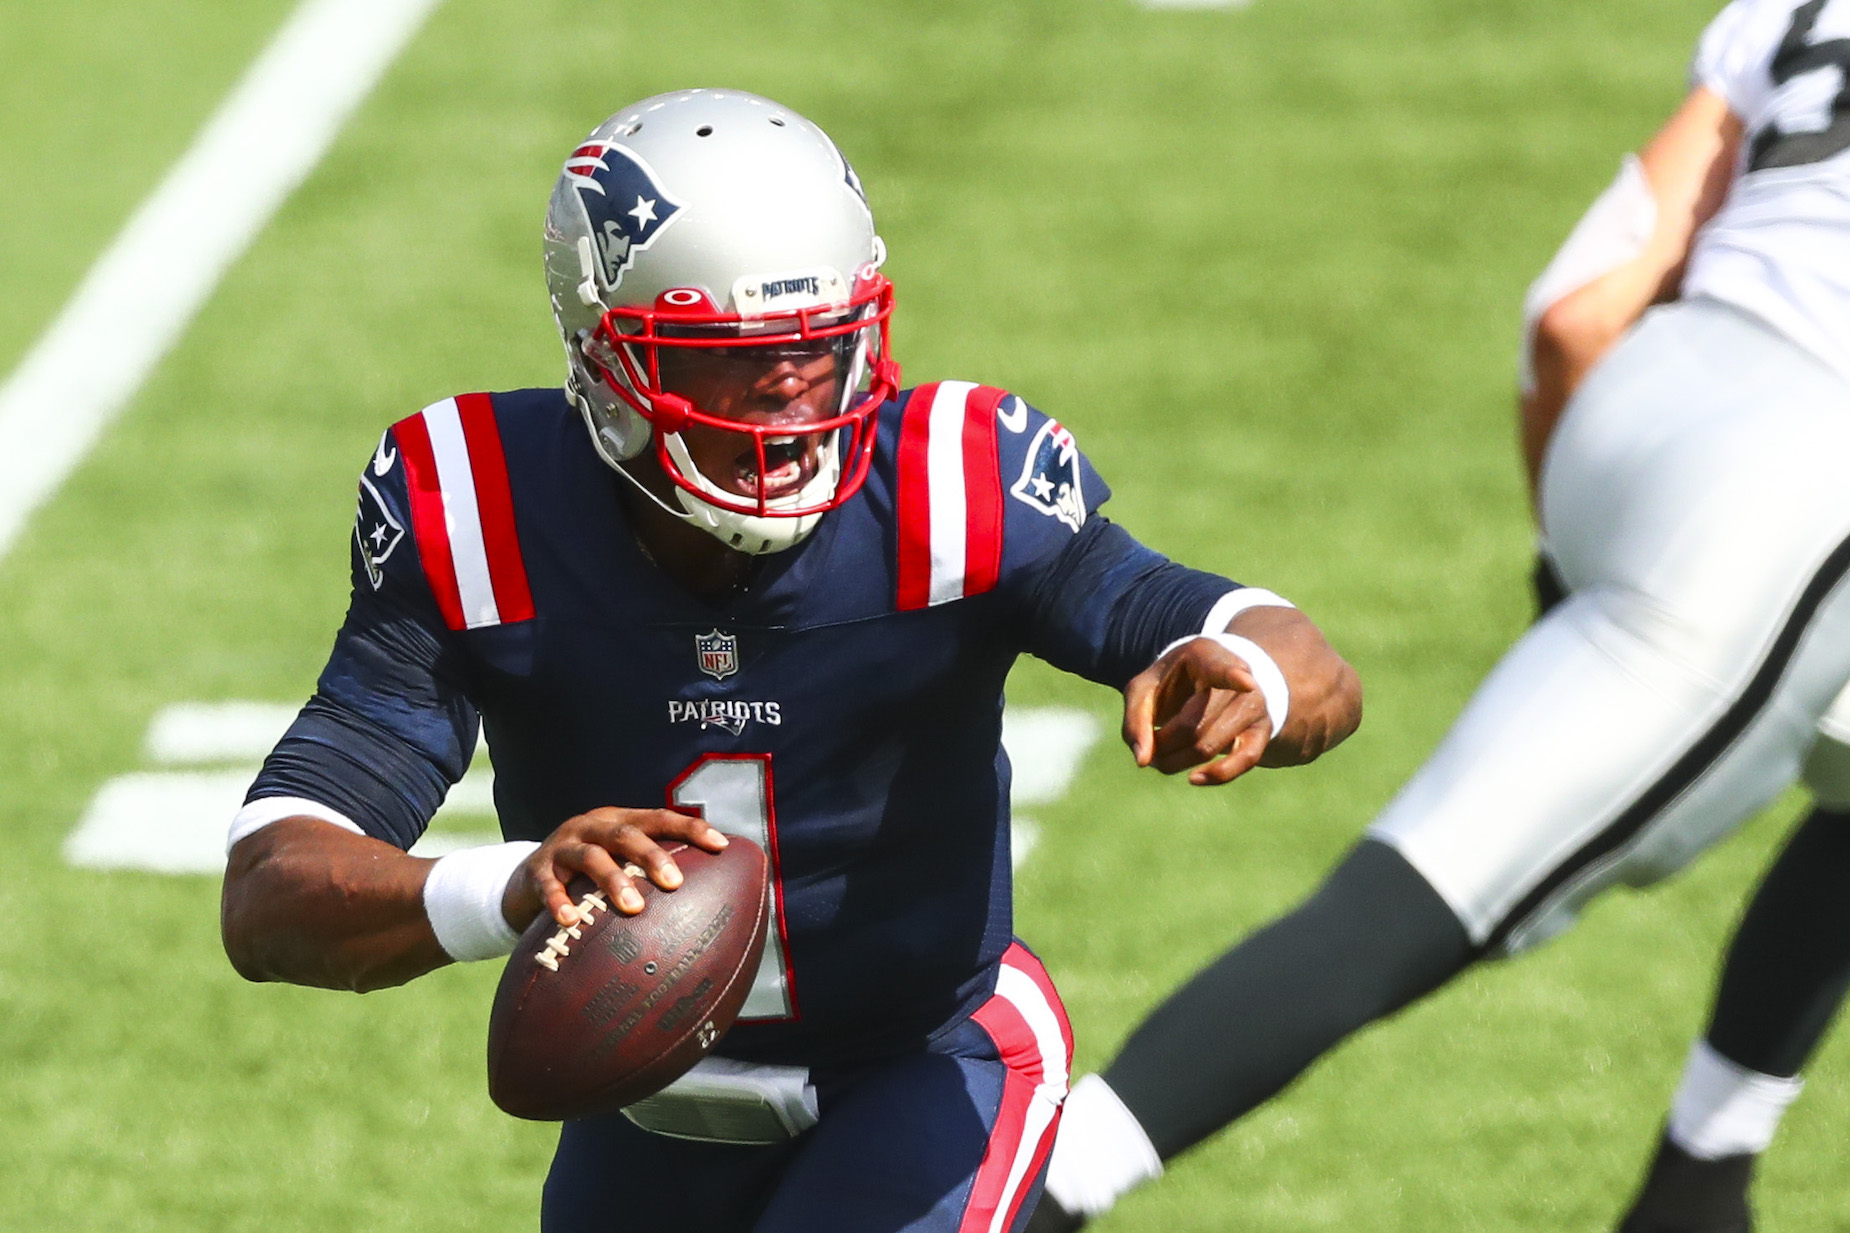 Cam Newton's stock rose on Monday night, even though he didn't suit up for the New England Patriots.